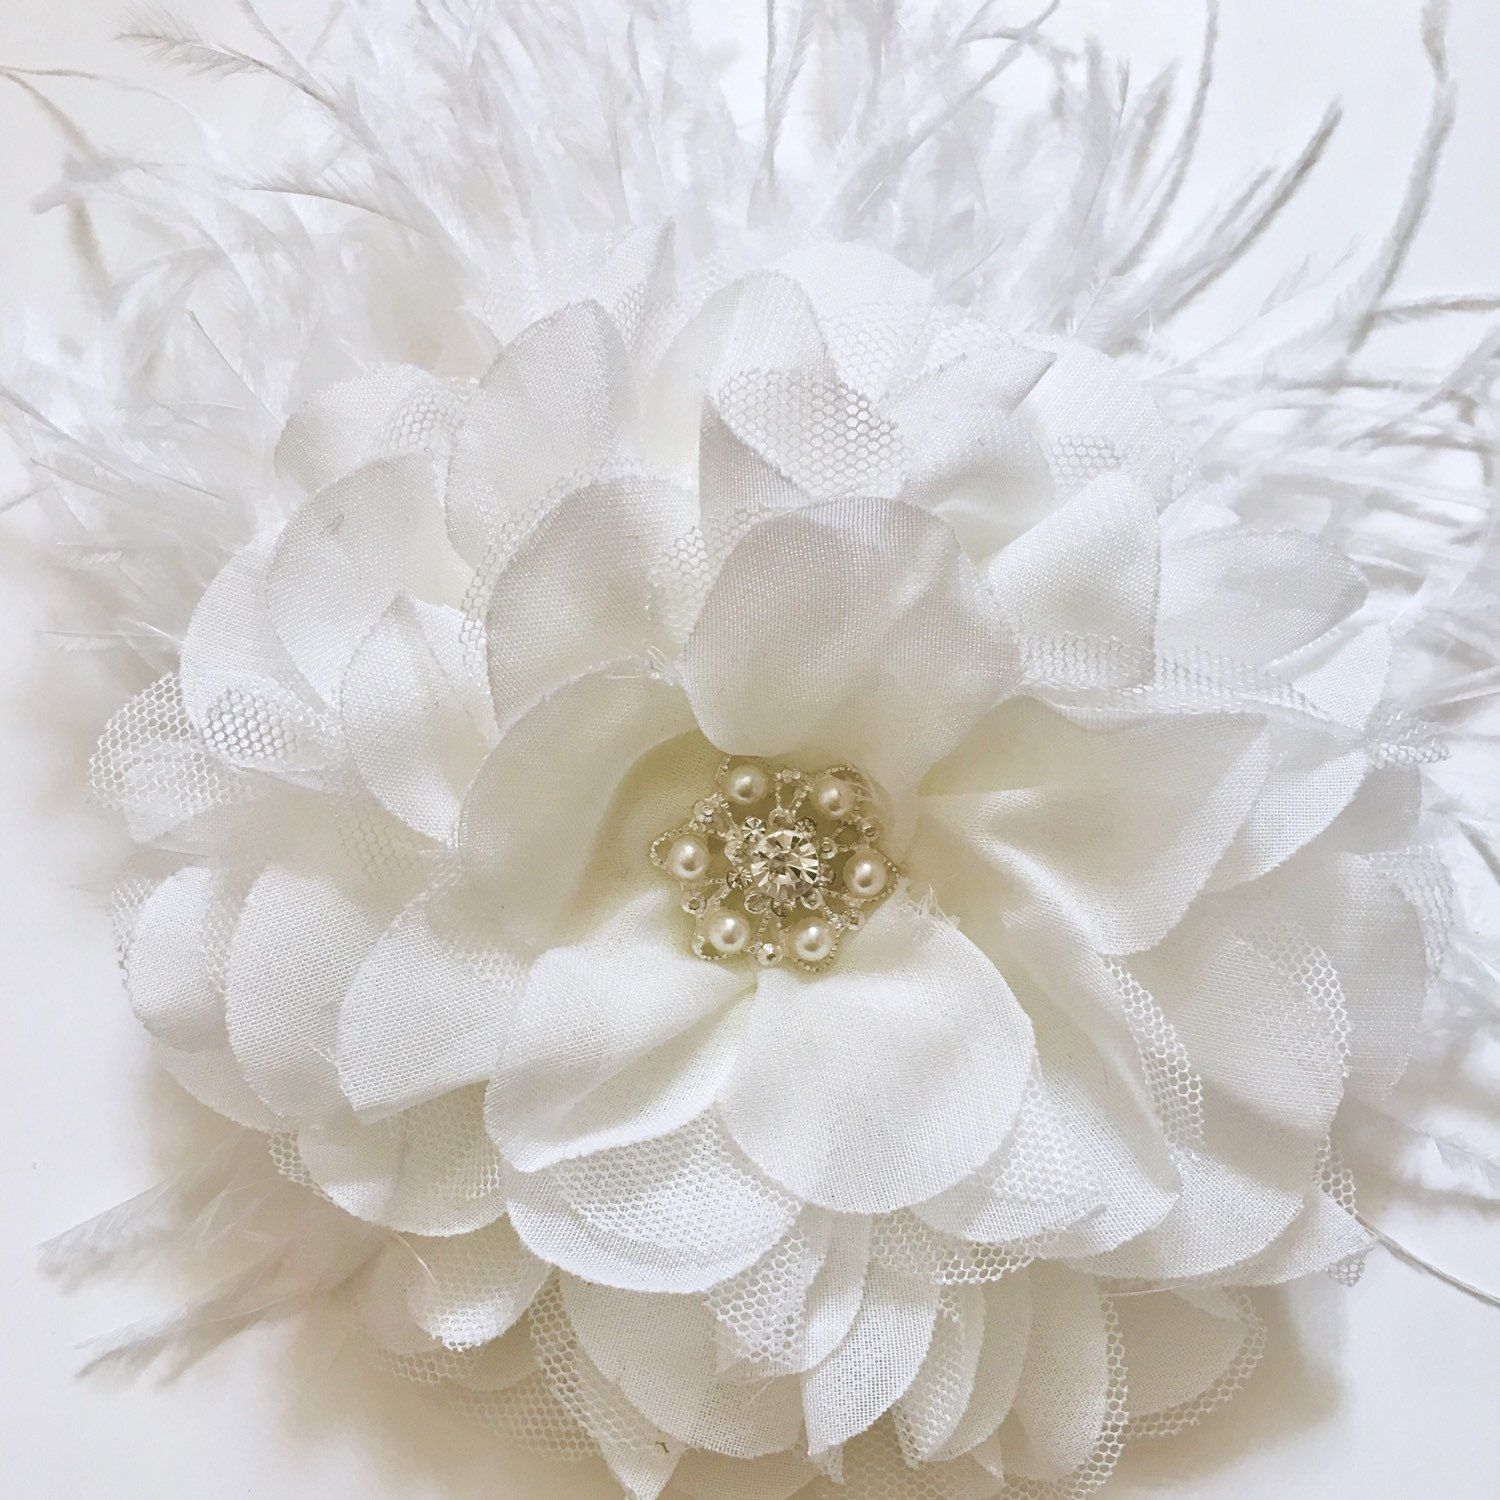 Fancygirlboutiquenyc Shared A New Photo On Bridal Hair Accessories